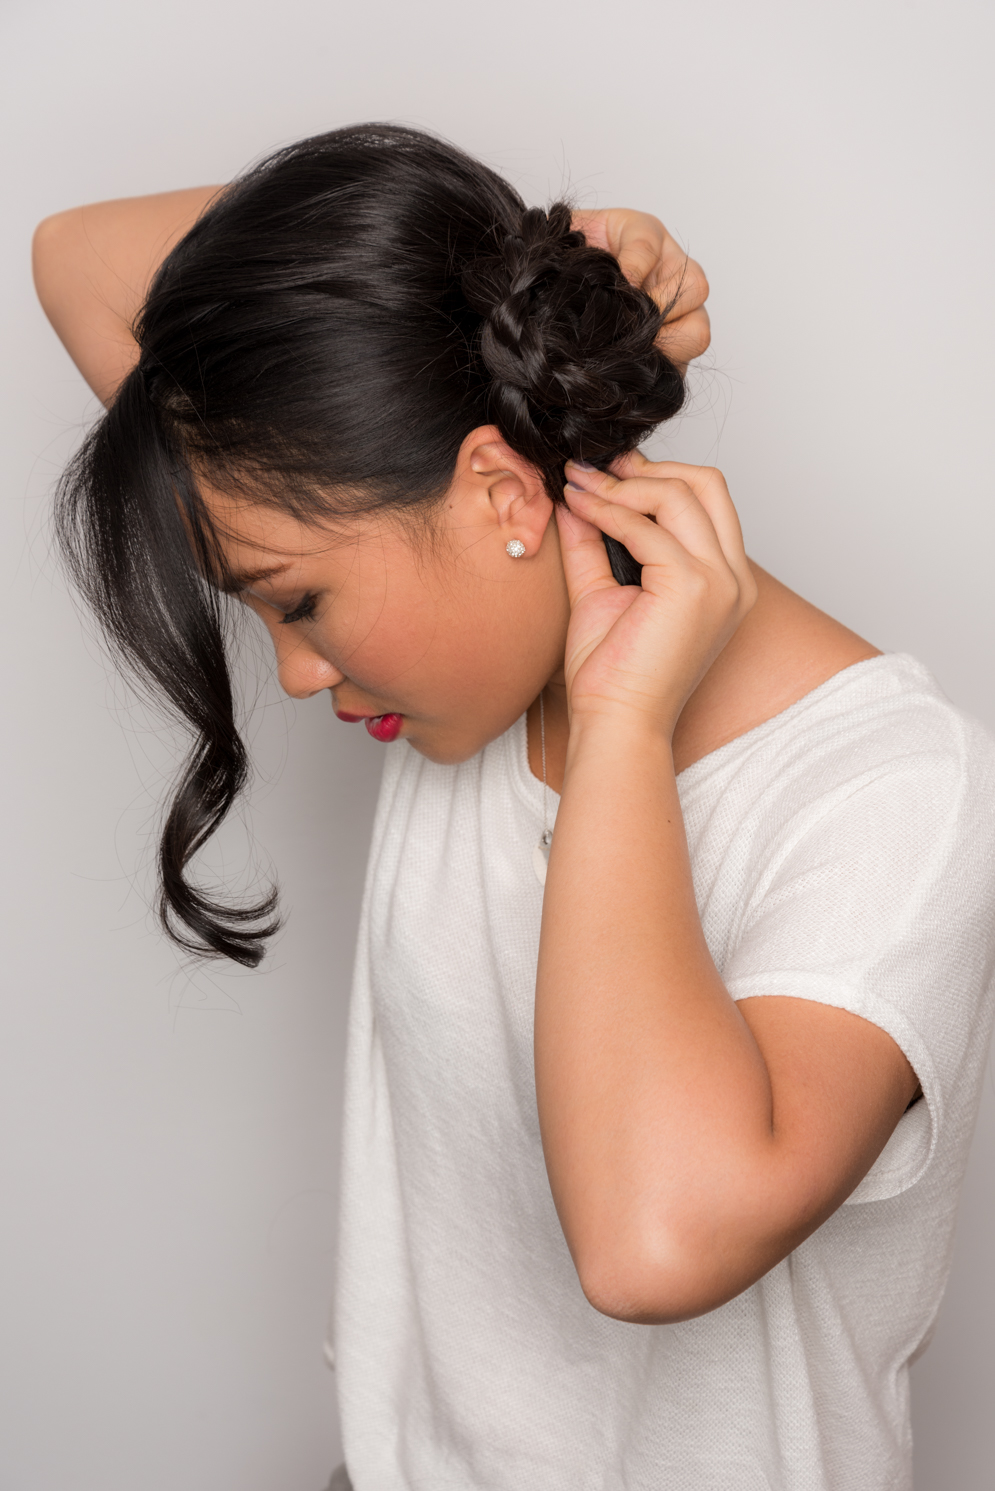 ROCK MAMA NYC LIFESTYLE BLOG - HOW TO MAKE A STYLISH SIDE BUN